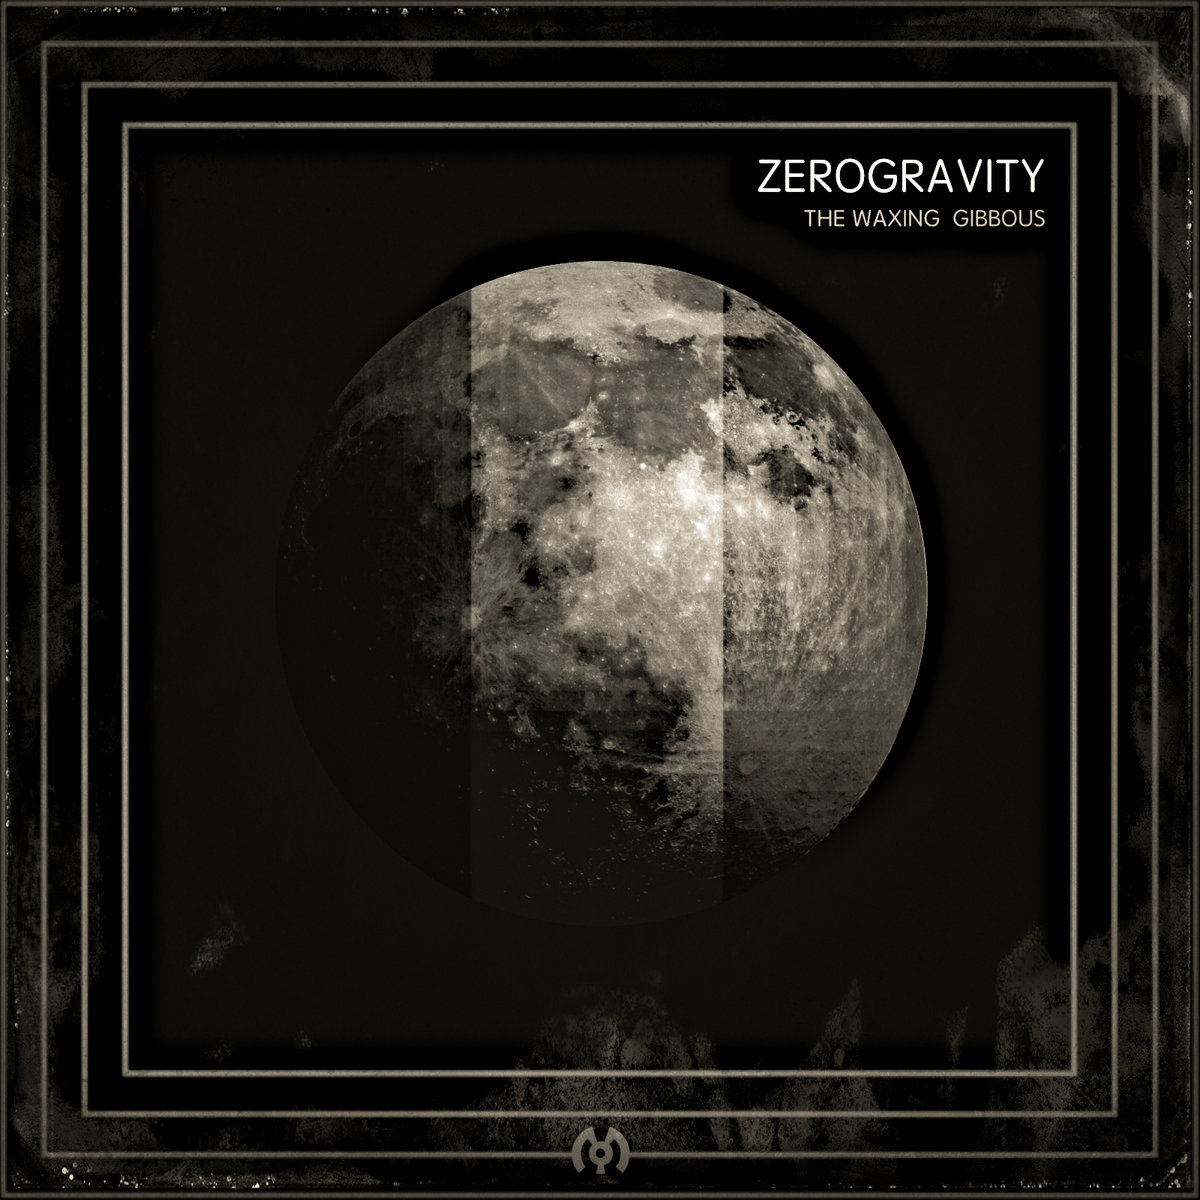 ZEROGRAVITY - The Waxing Gibbous